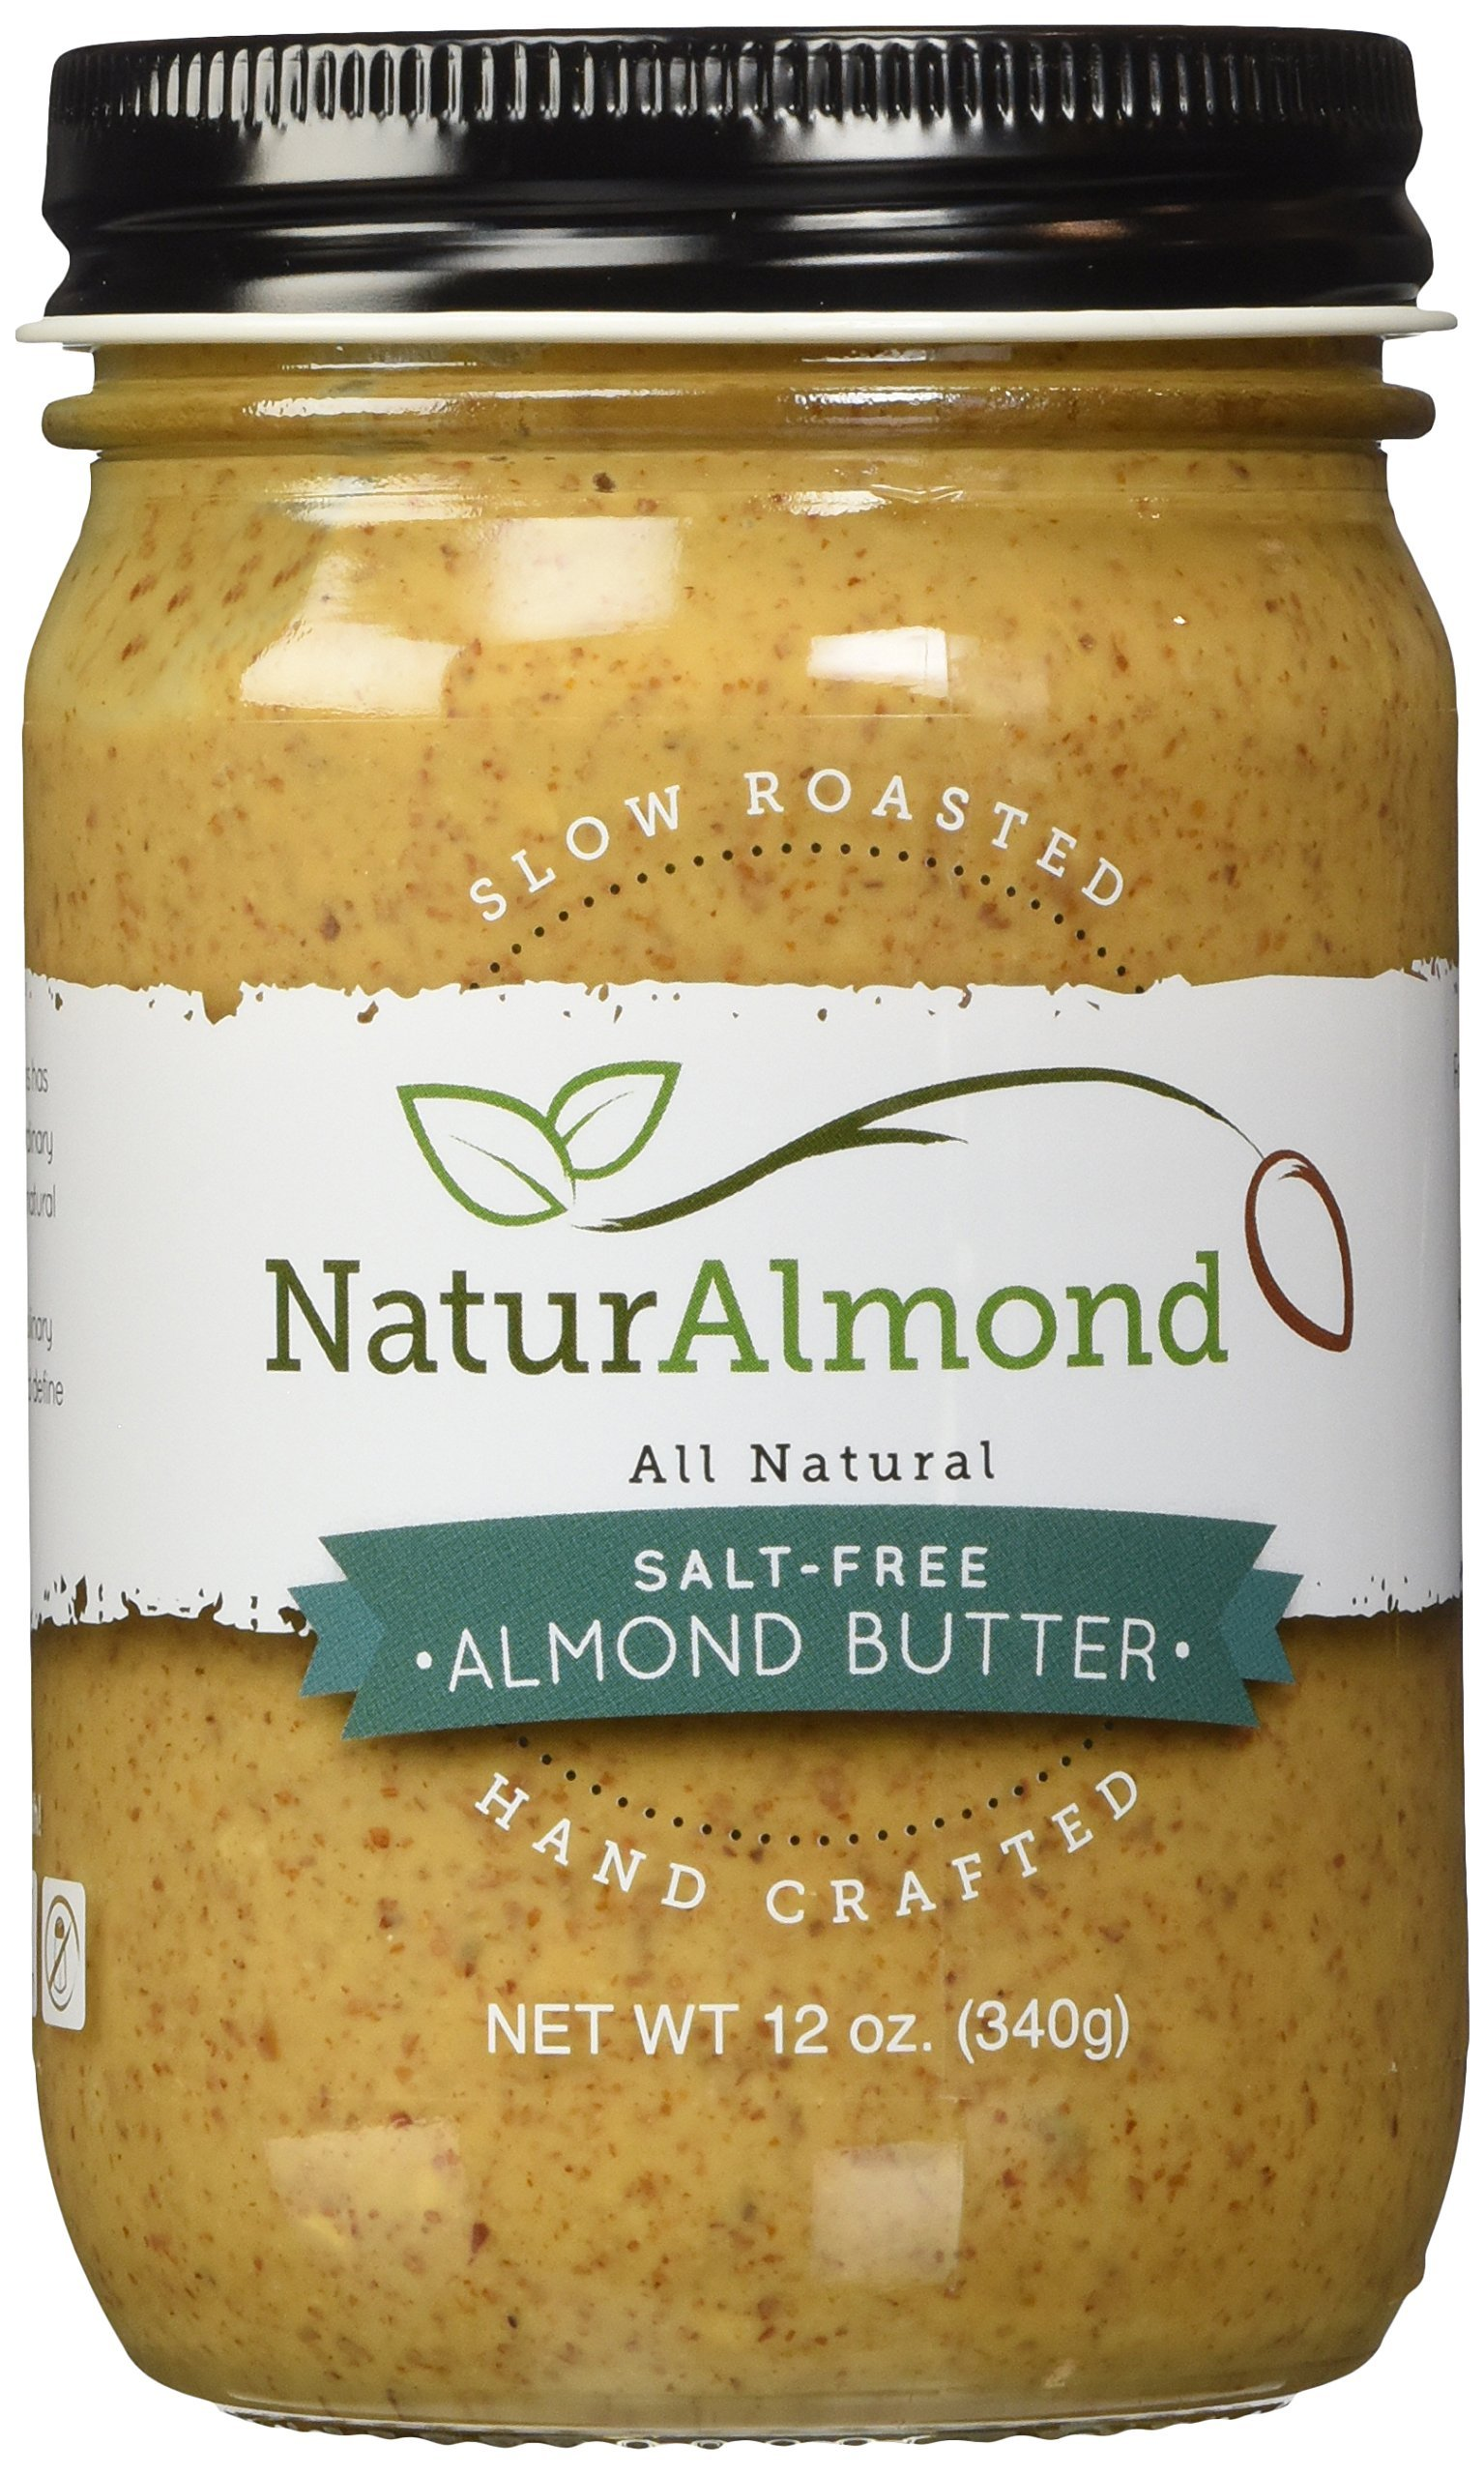 NaturAlmond Almond Butter, Salt Free, 12 oz